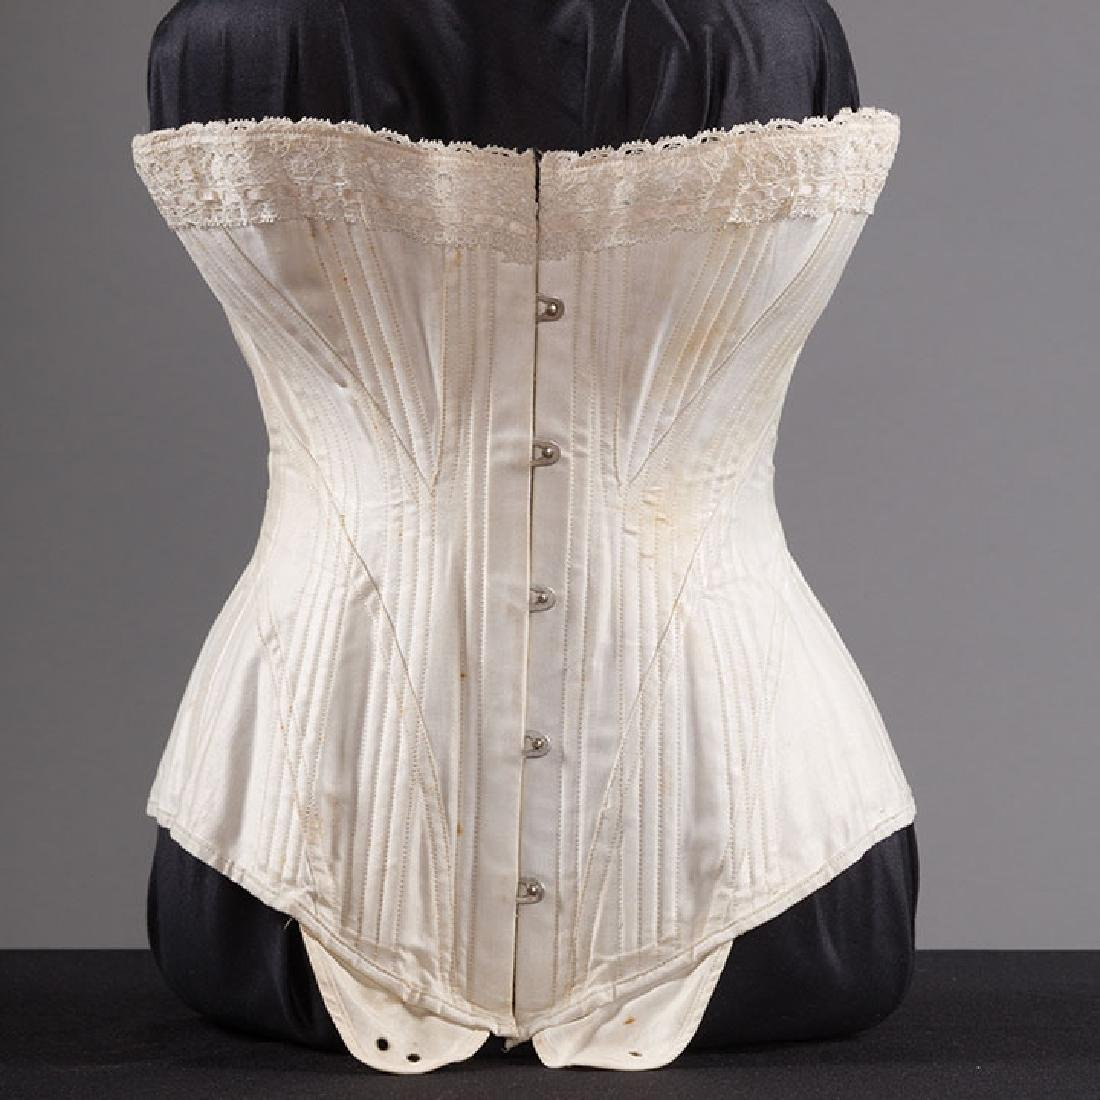 BONED CORSET & WIRE BUSTLE, 19TH C - 5